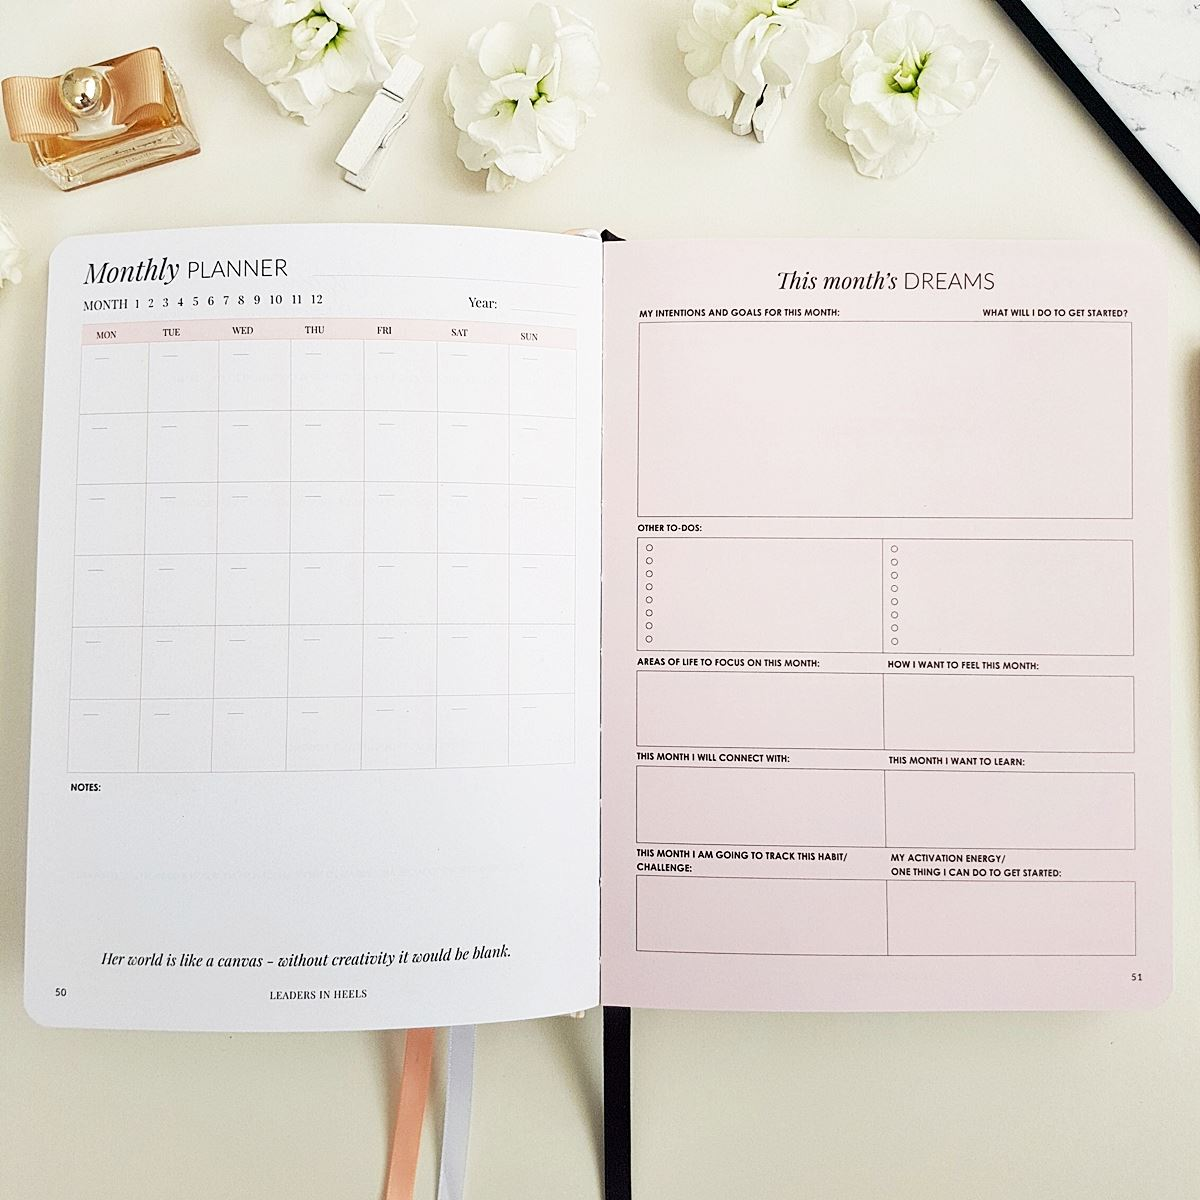 The Leaders in Heels Planner Make It Happen - Monthly Planner